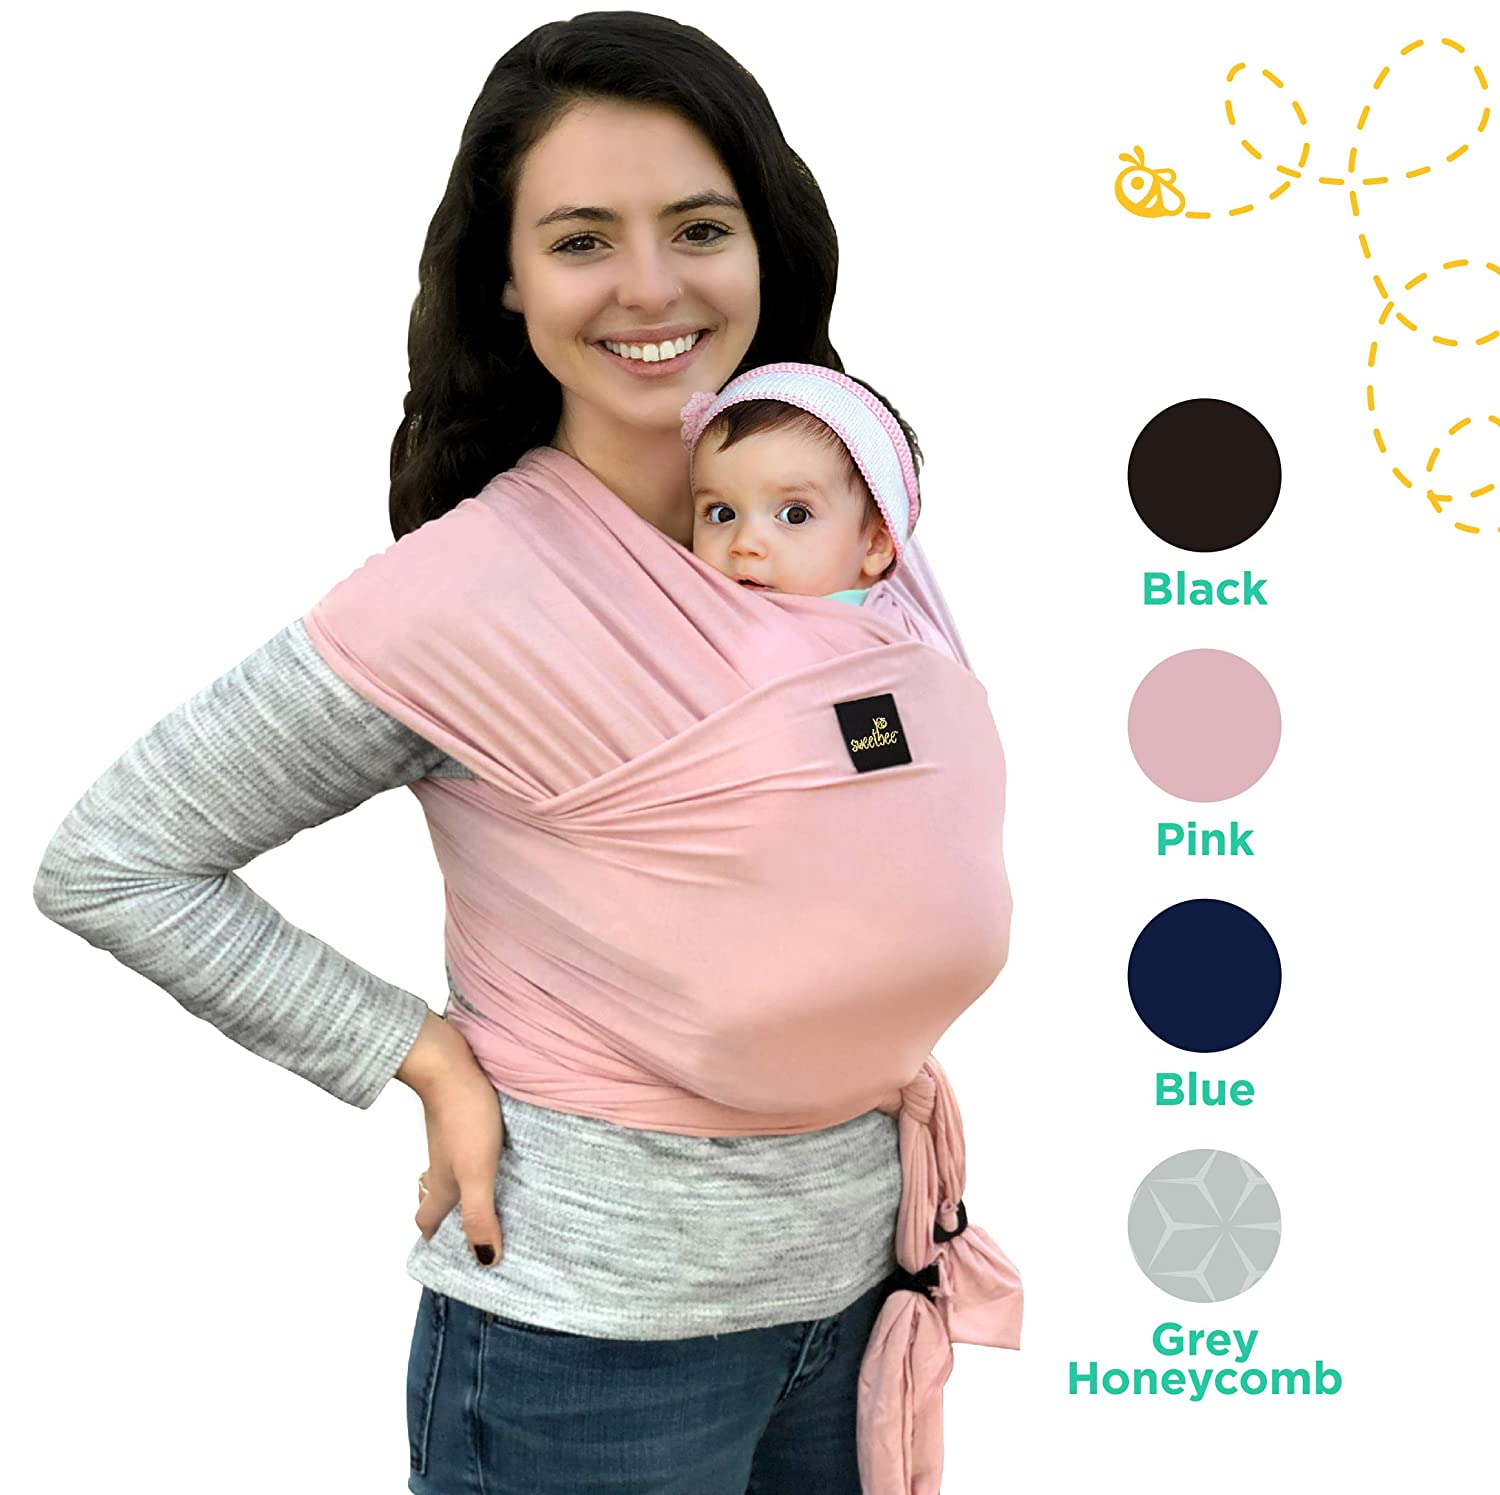 Sweetbee My Honey Wrap - Lightweight, Natural and Breathable Baby Carrier for Newborn